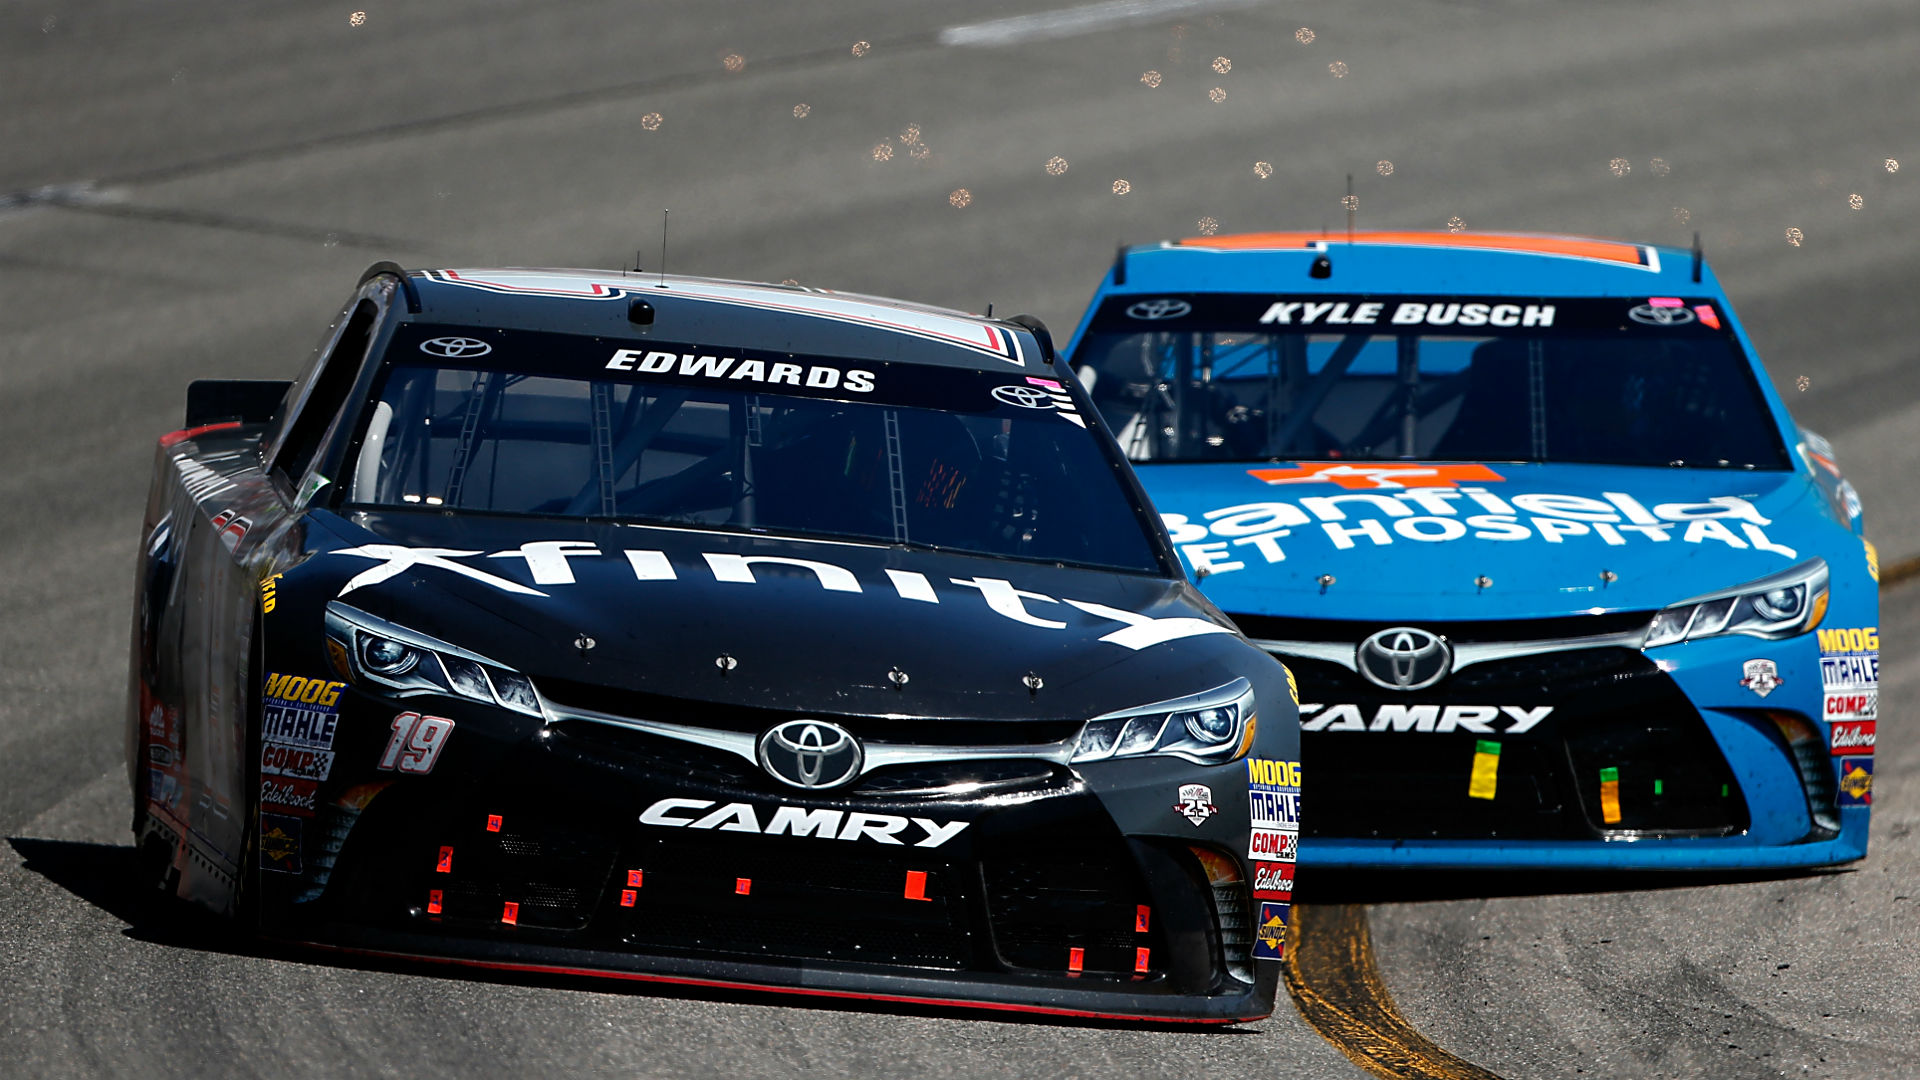 Edwards wins second-straight after battle with teammate